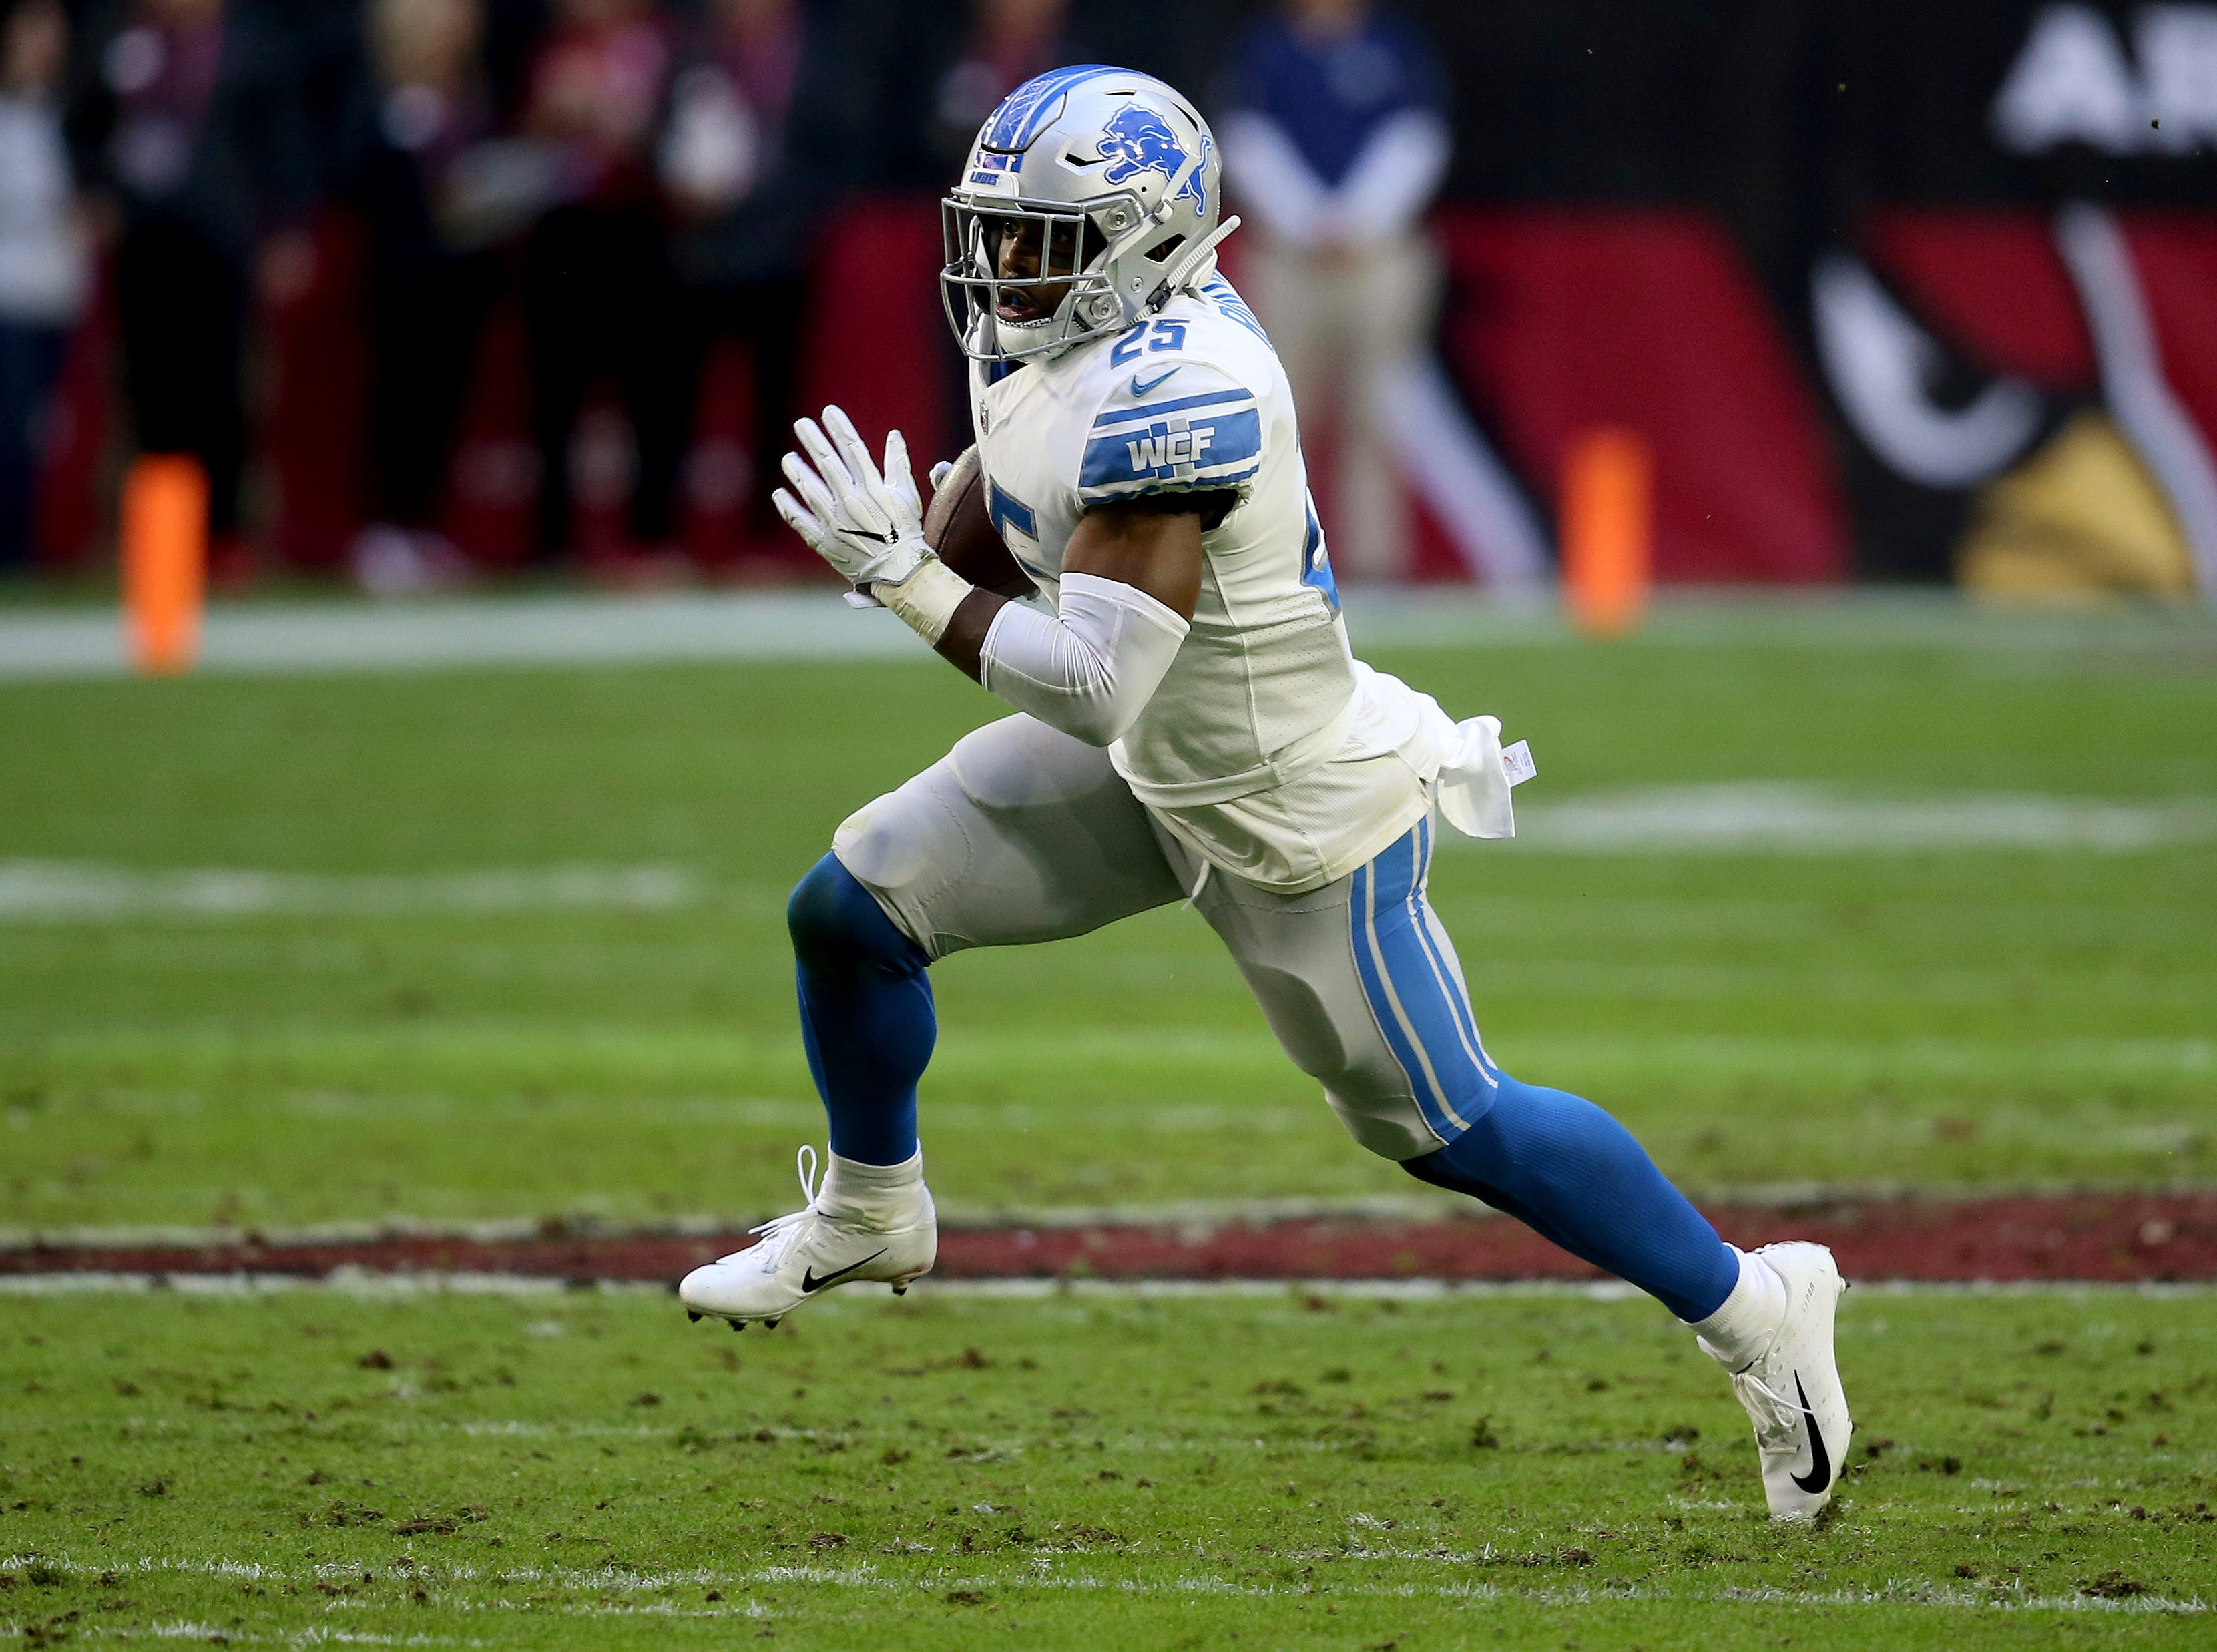 Detroit Lions running back Theo Riddick (25) runs against the Arizona Cardinals during the first half.